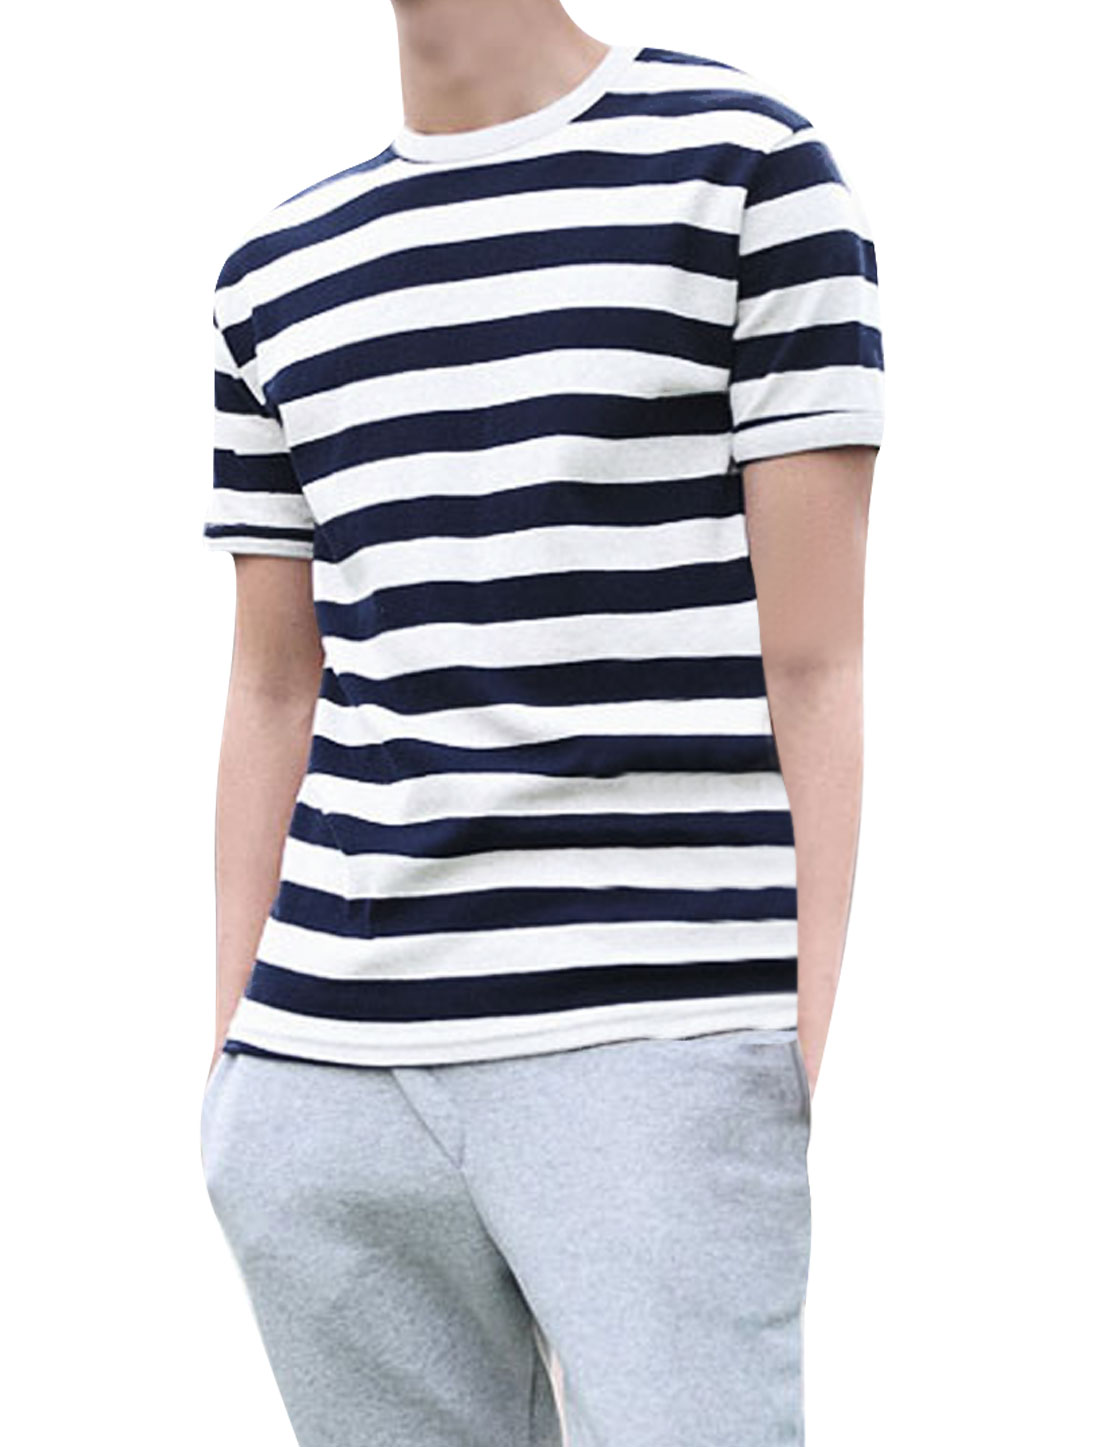 Mens Navy Blue White Short Sleeves Horizontal Stripes Tee Shirt S